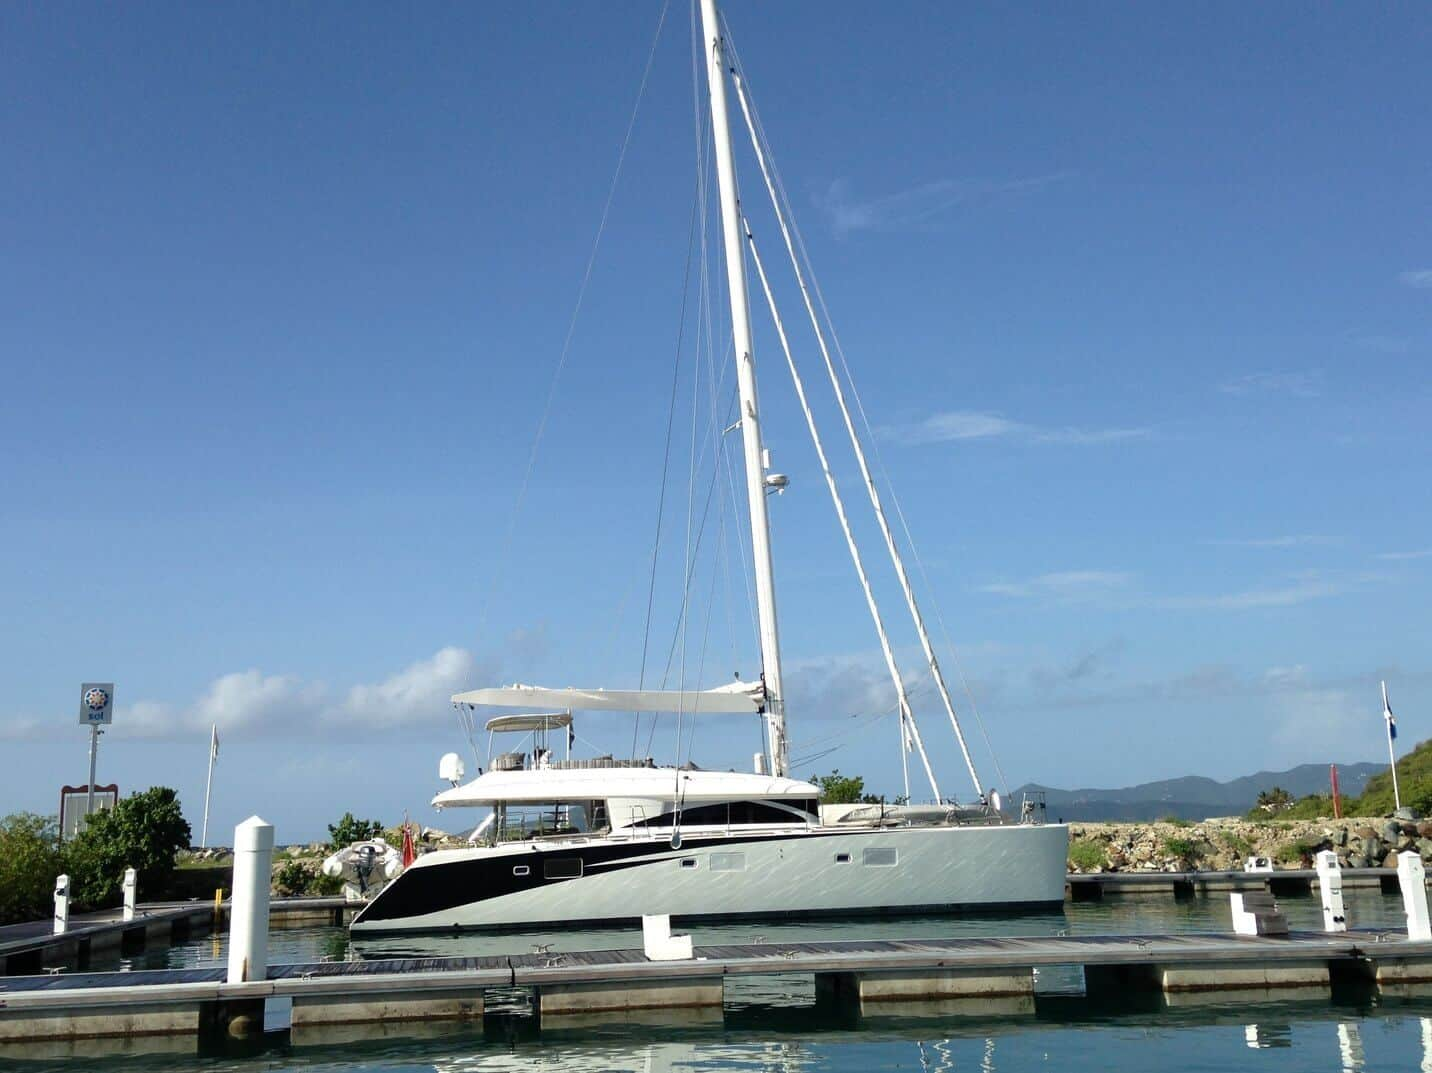 lagoon 620 lady katlo refit project management